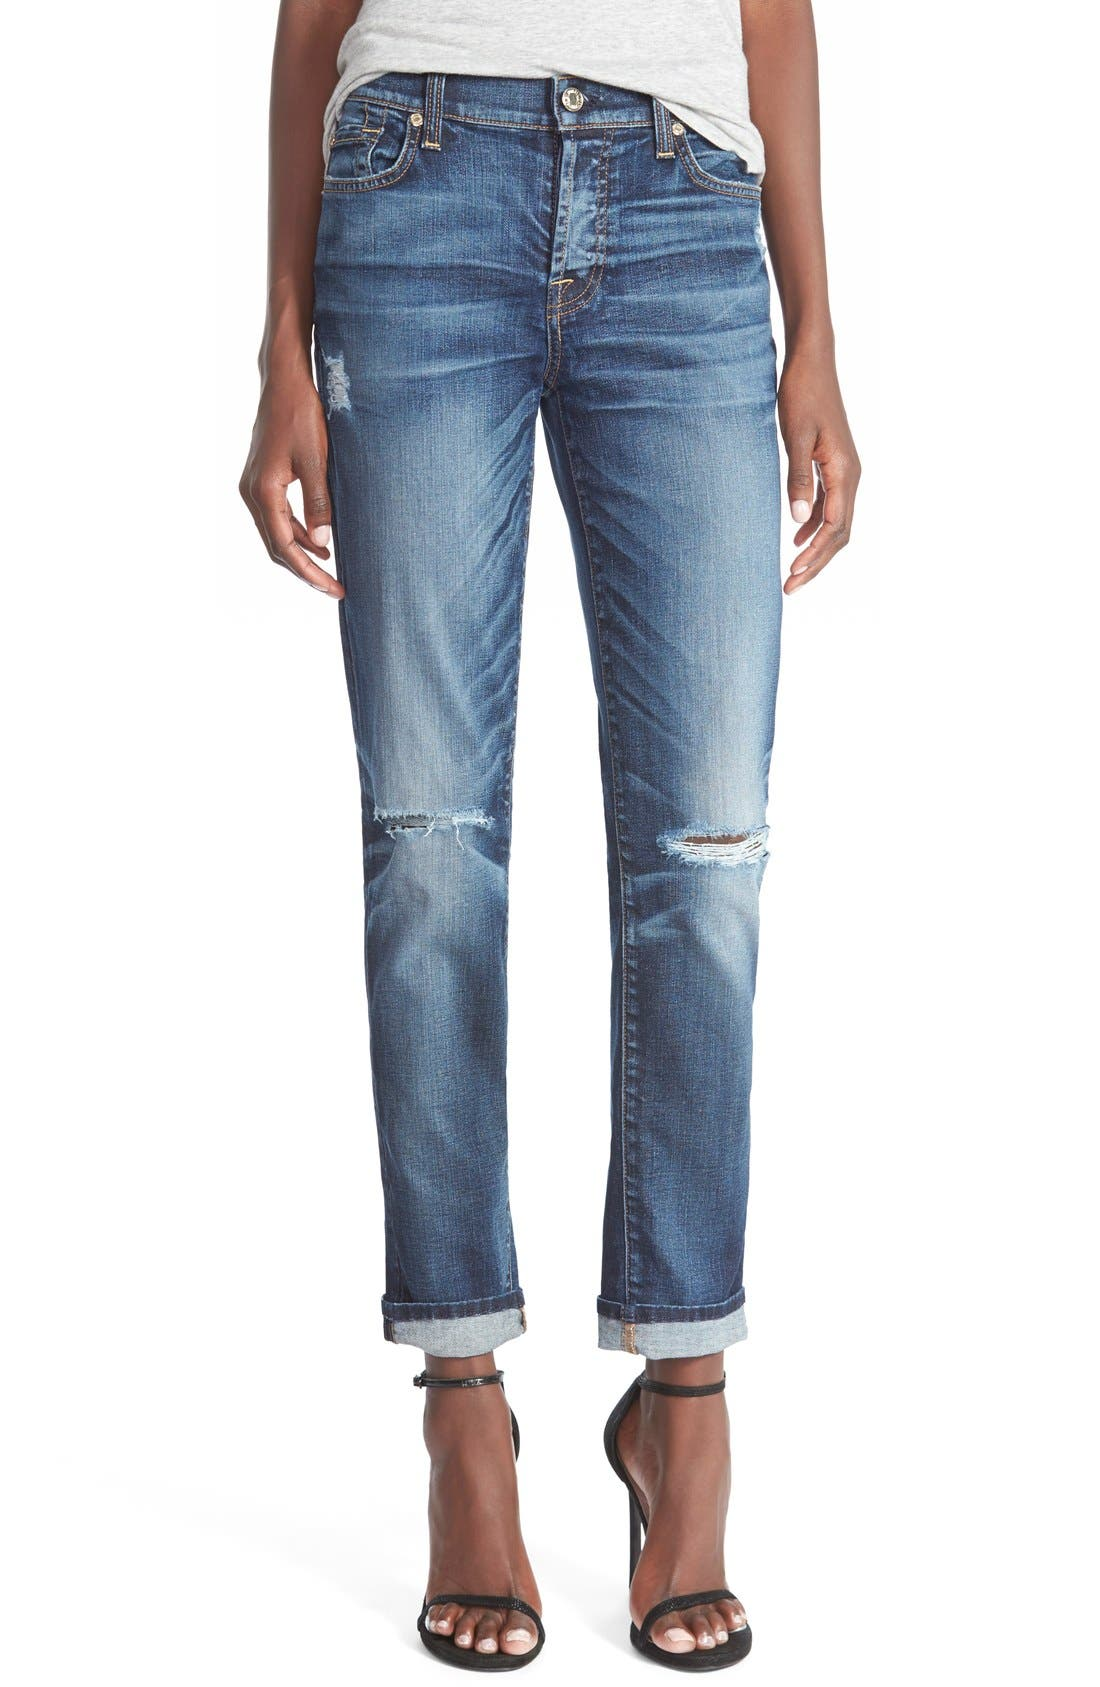 Main Image - 7 For All Mankind® 'Josefina' Mid Rise Boyfriend Jeans (Marie Vintage Blue 3)